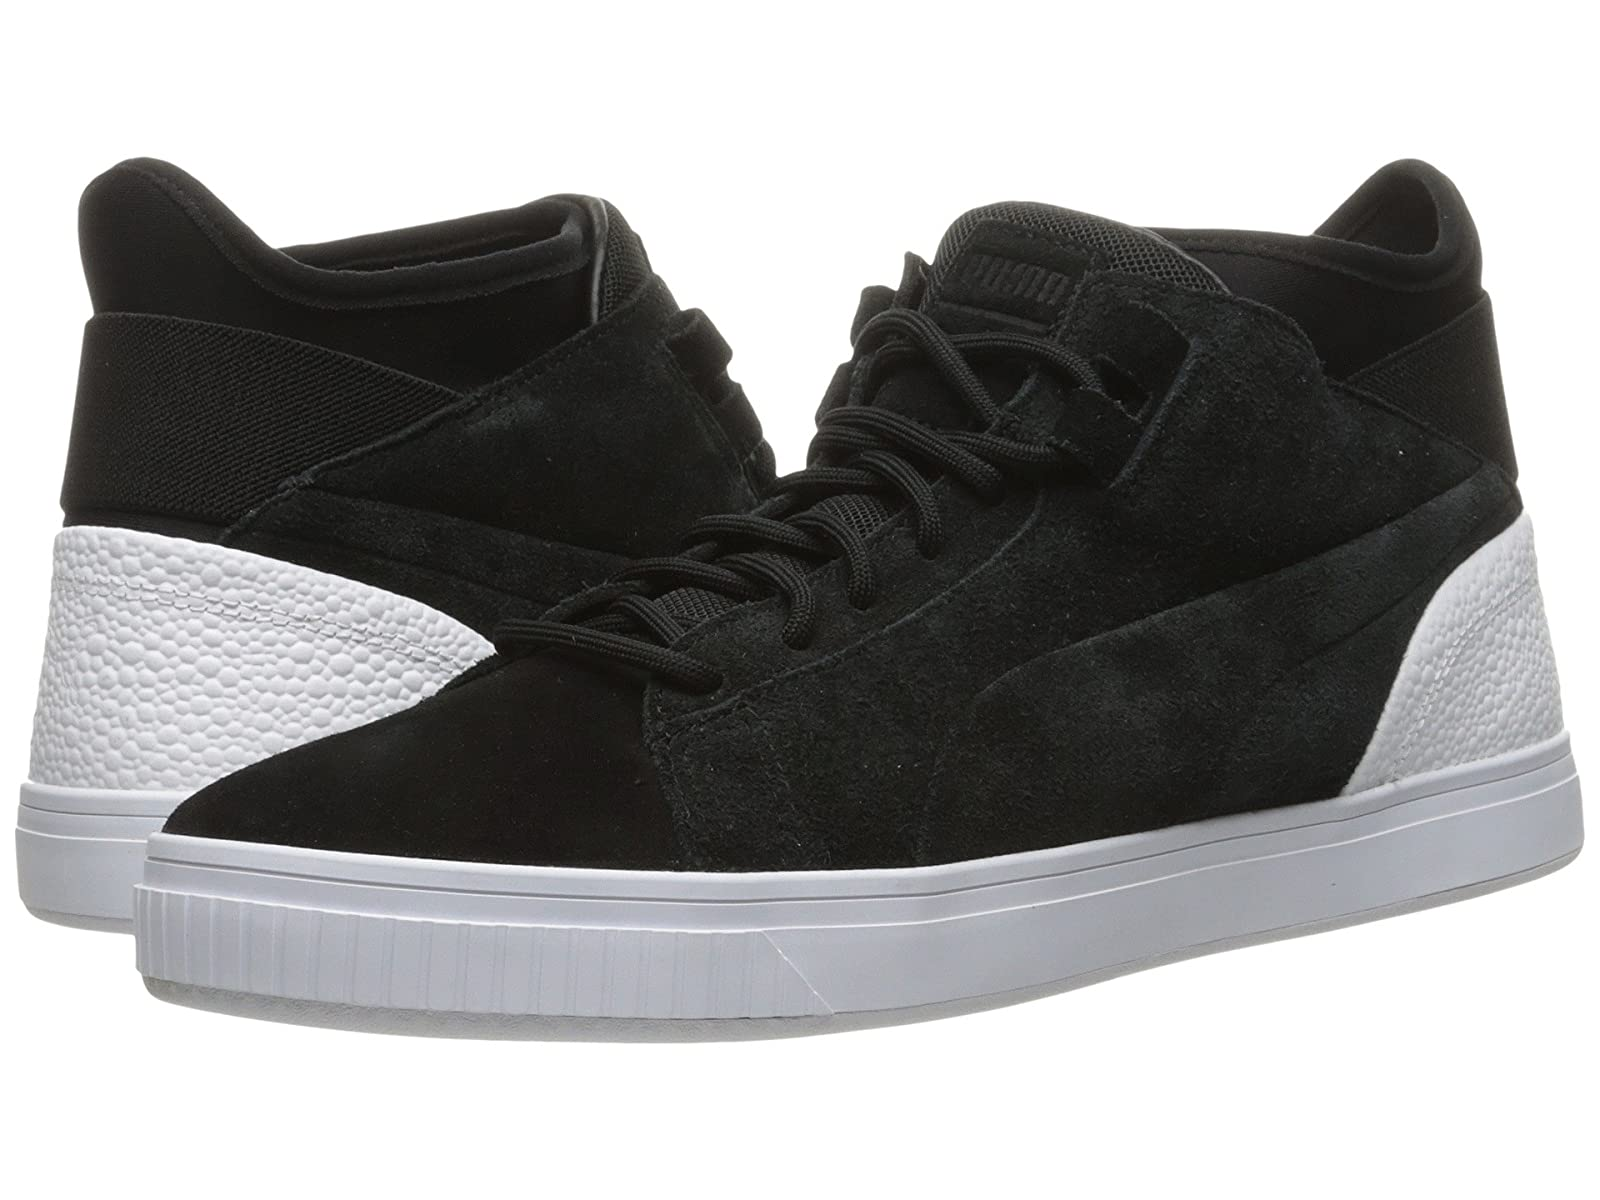 PUMA Play B&CCheap and distinctive eye-catching shoes